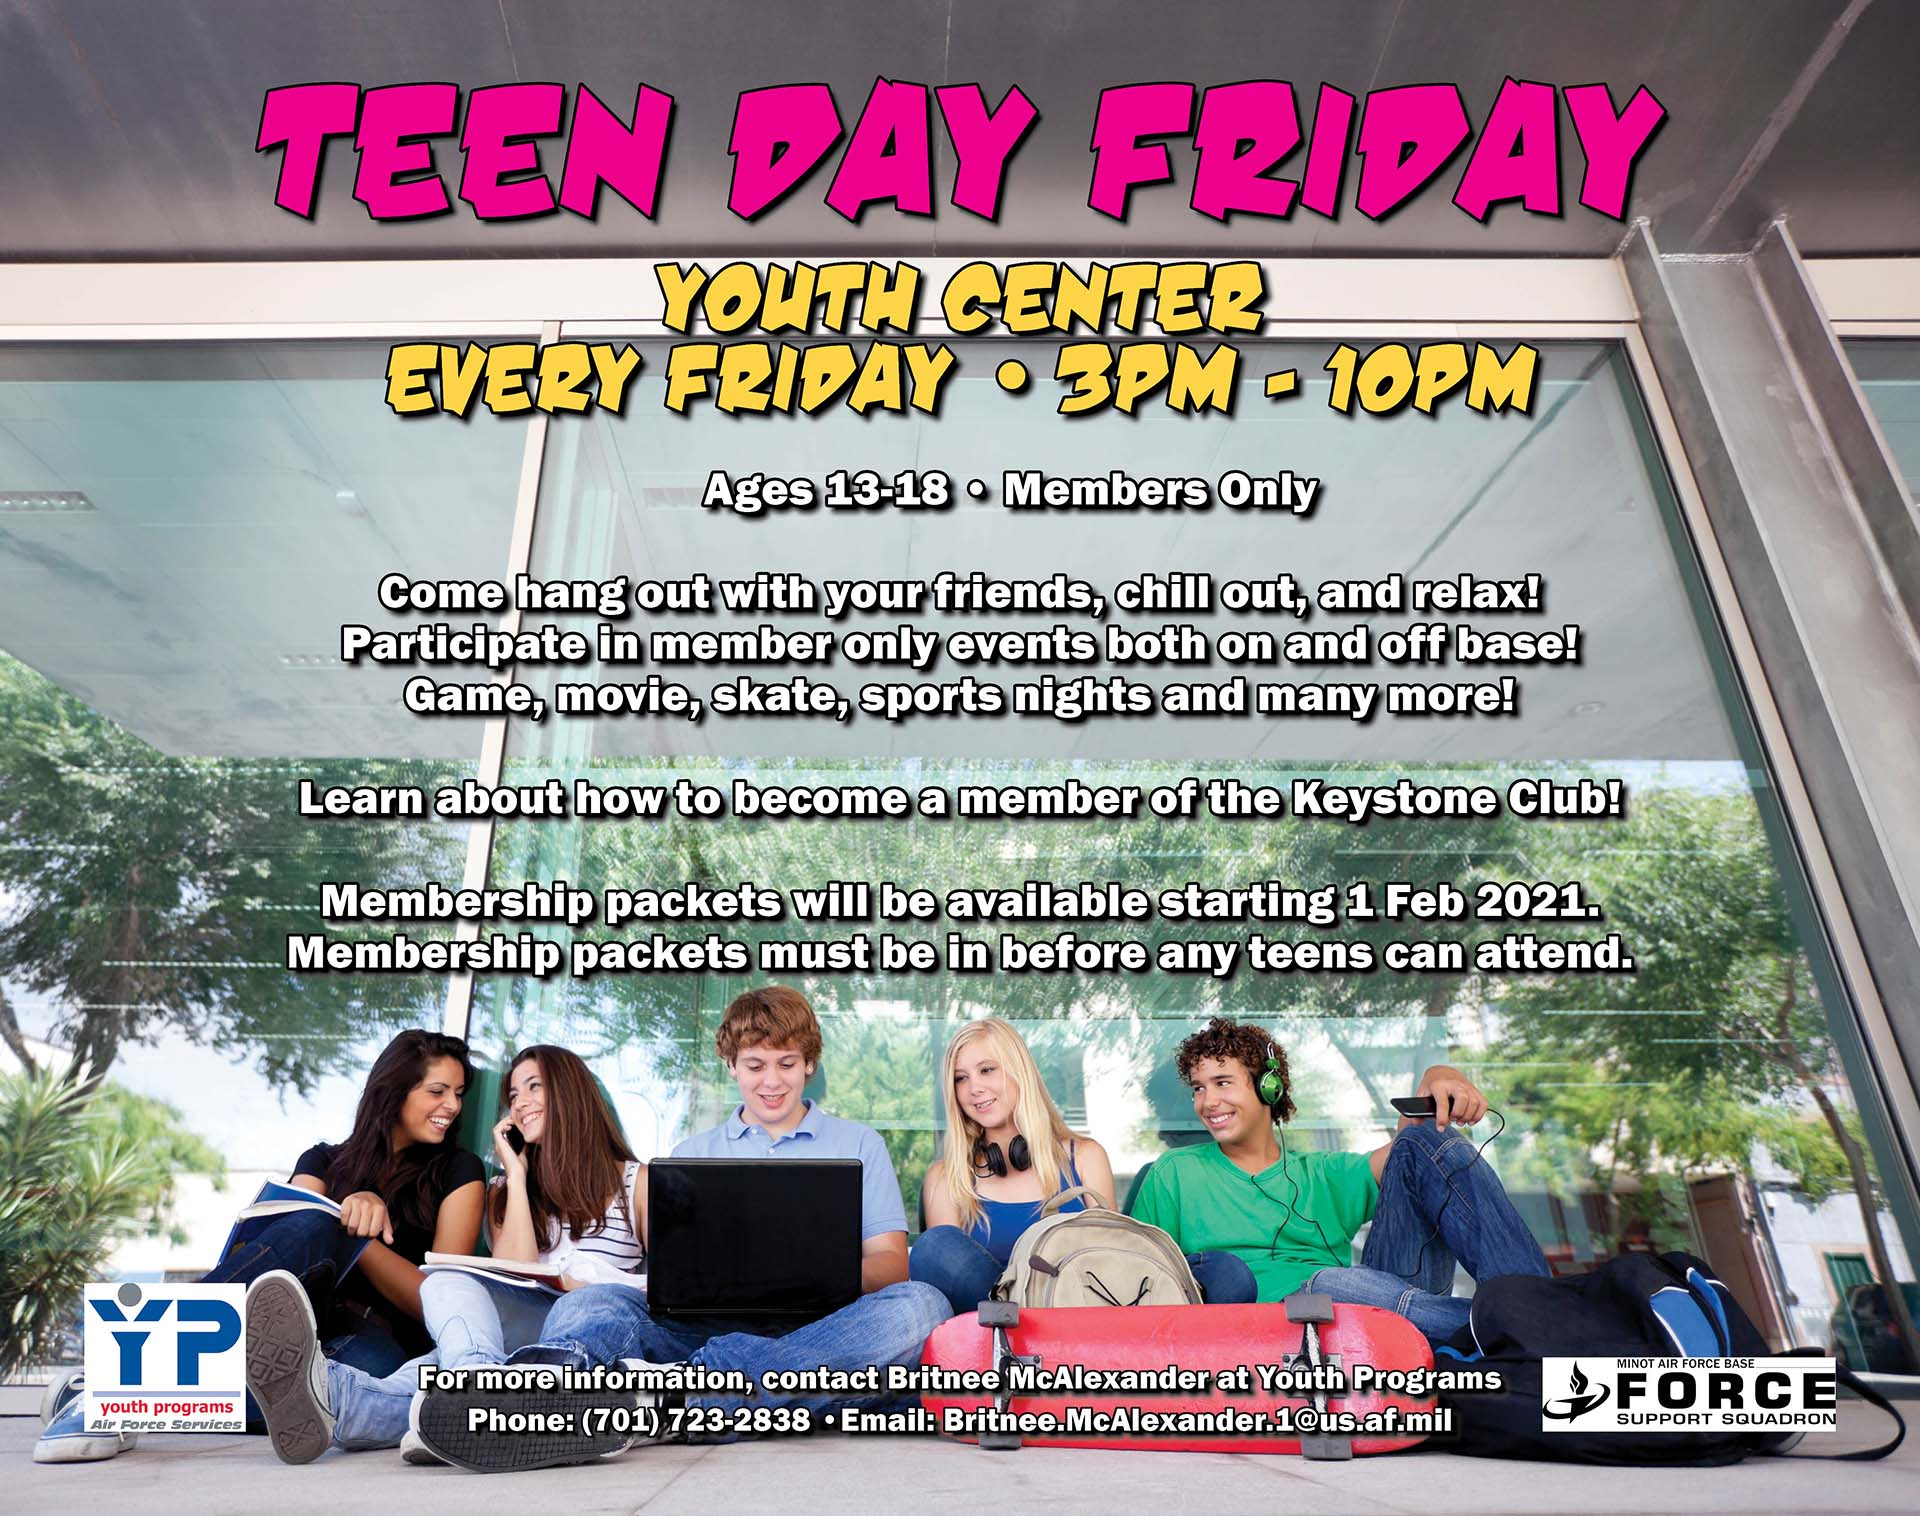 Teen Day Friday